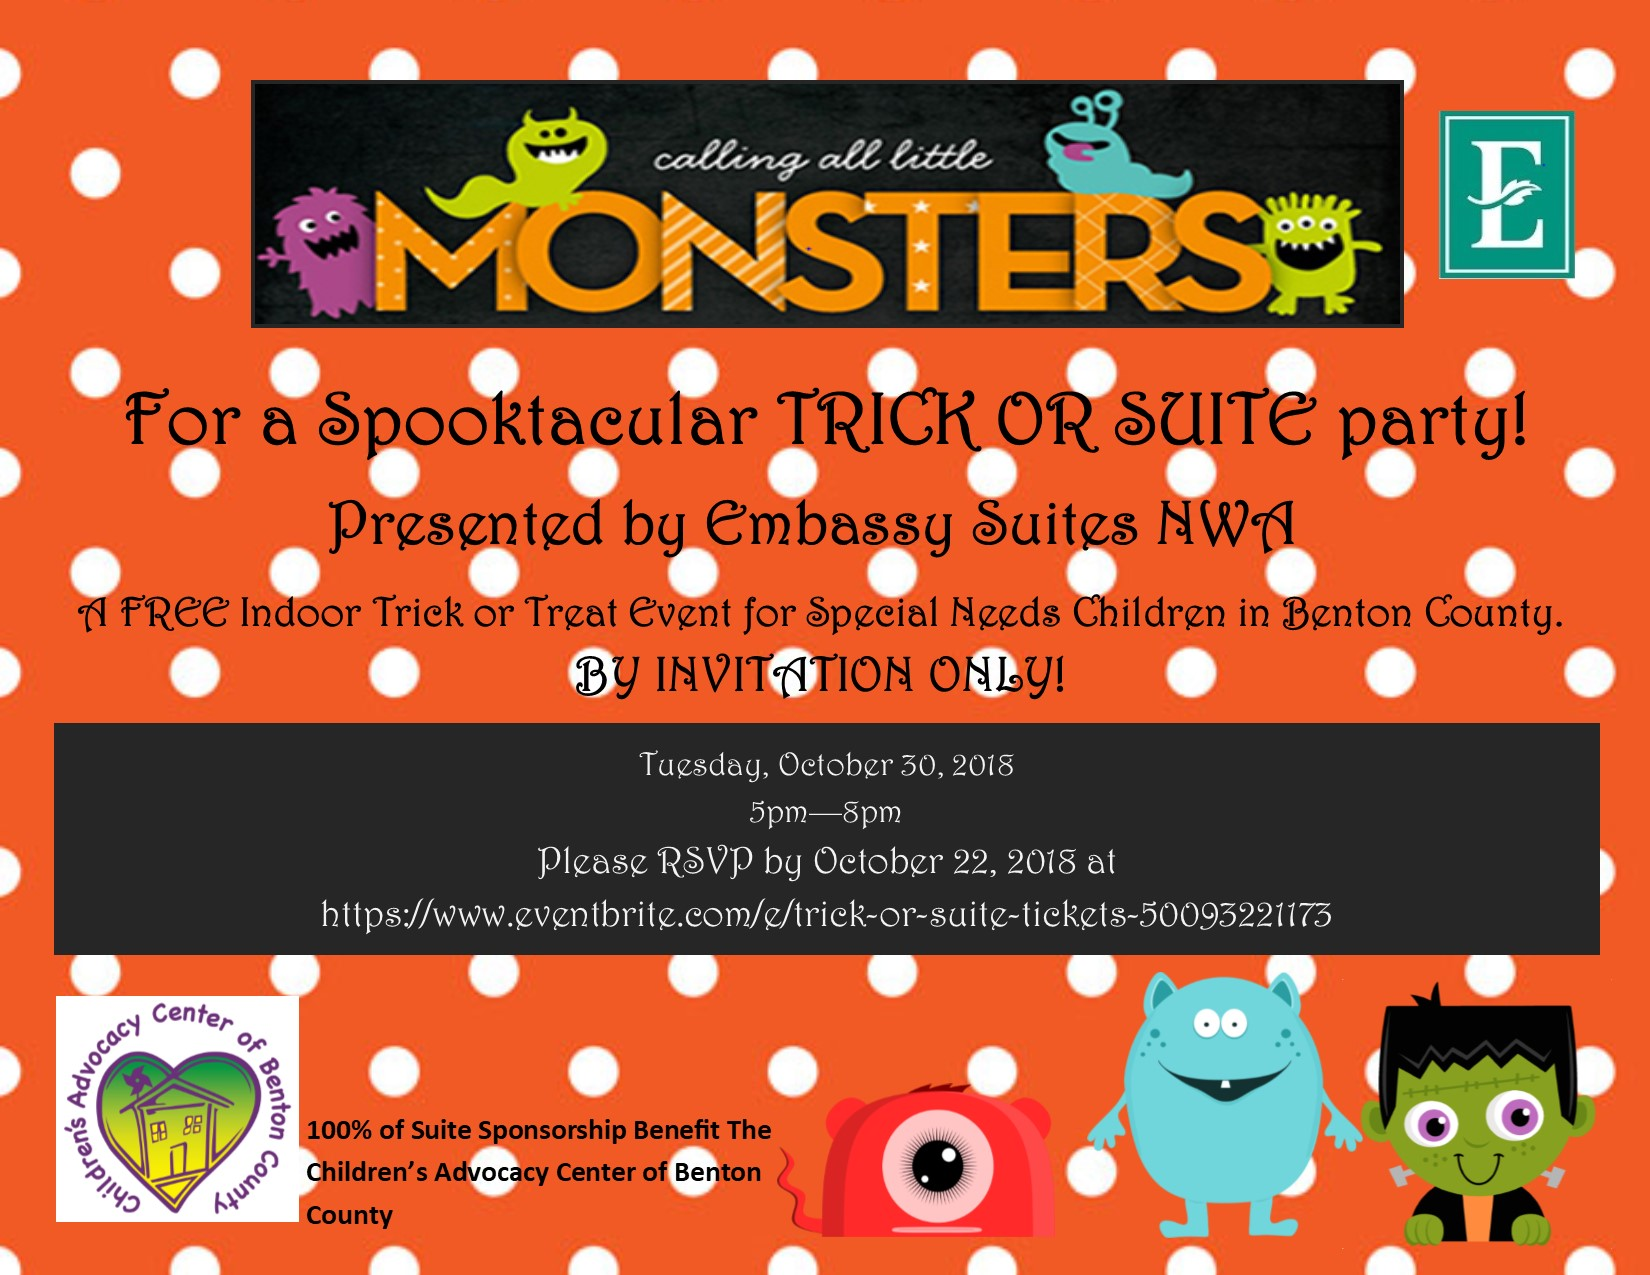 Spooktacular Trick or Suite Party